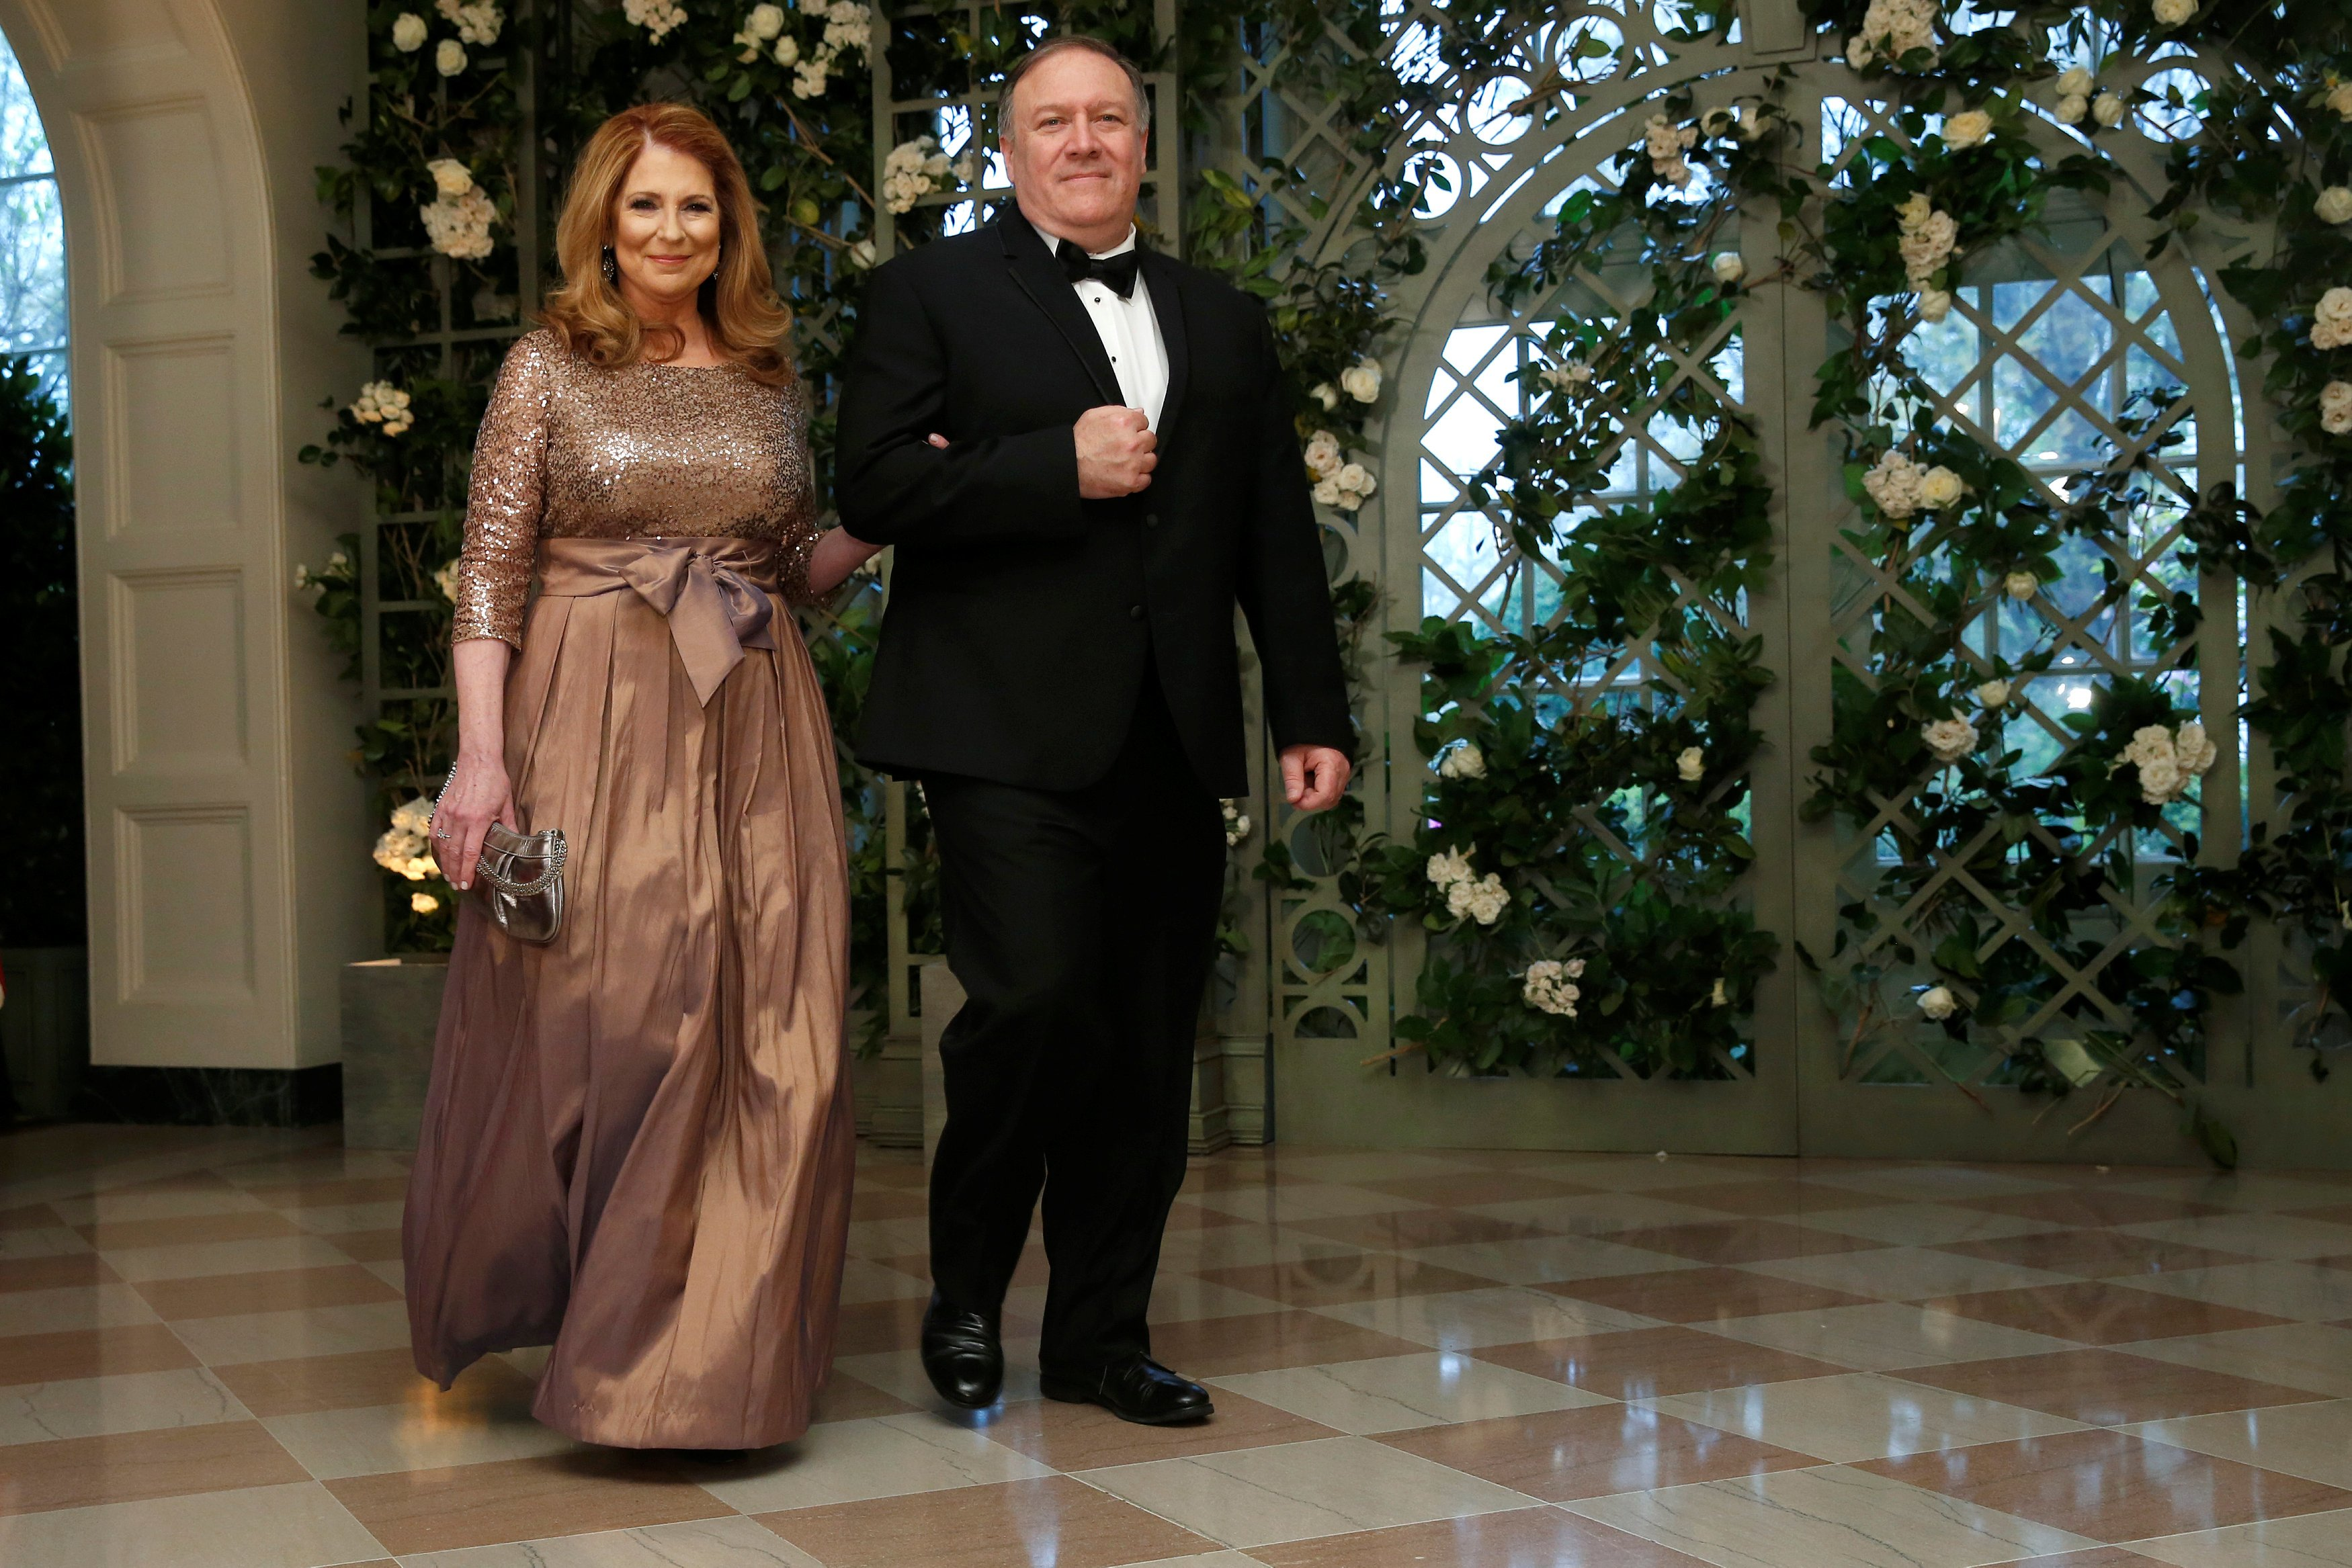 CIA Director Pompeo and his wife arrive for the State Dinner in honor of French President Macron at the White House in Washington